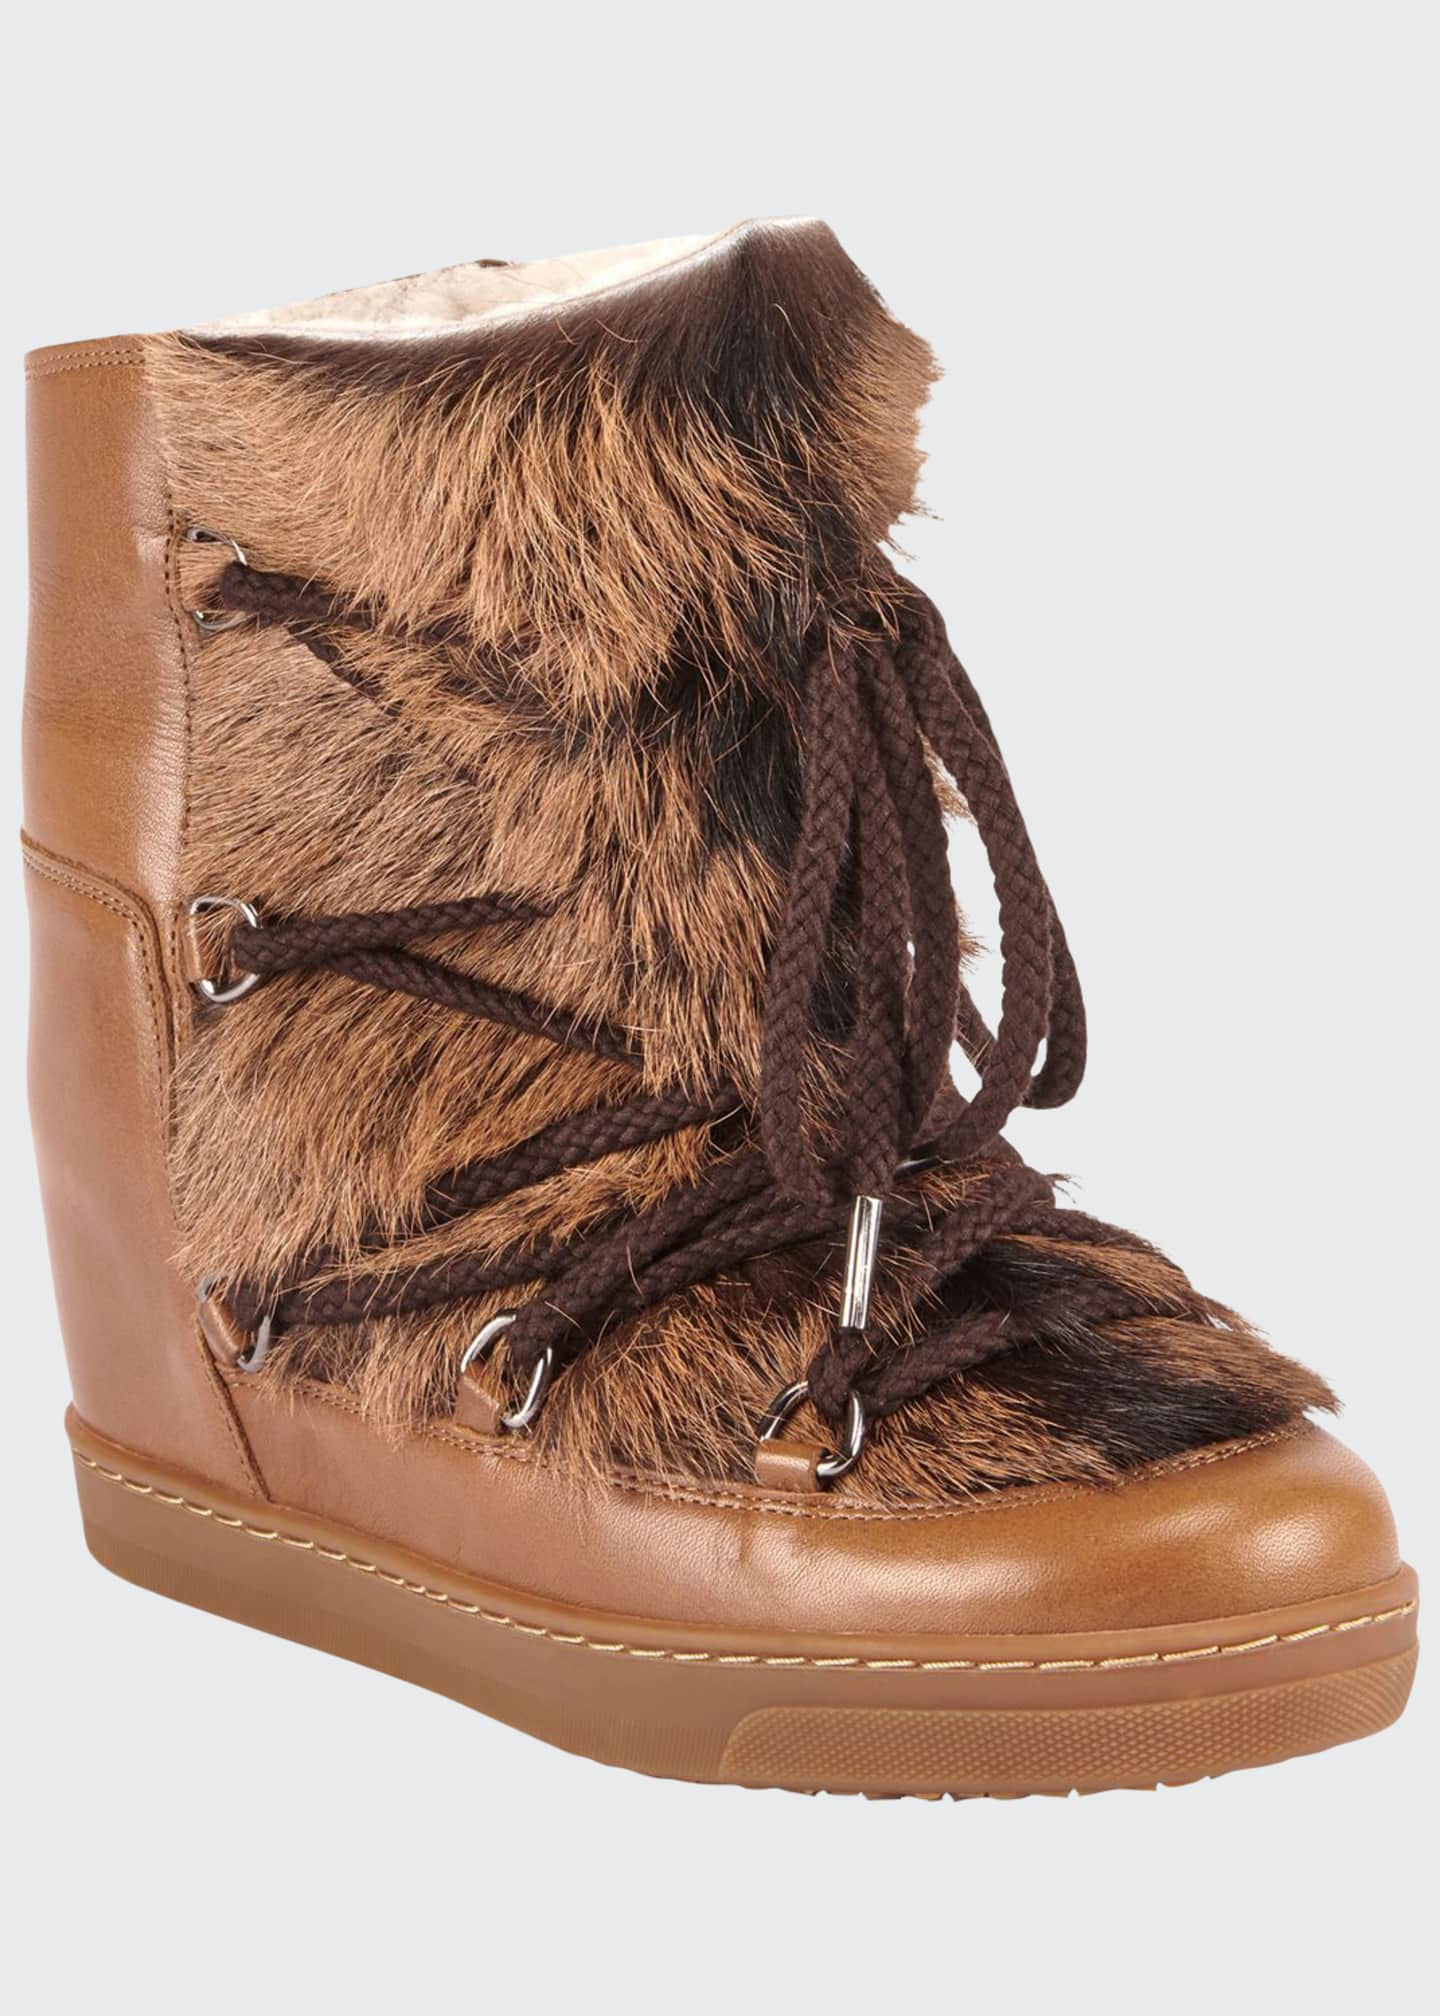 Isabel Marant Nowles Shearling-Lined Lace-Up Booties